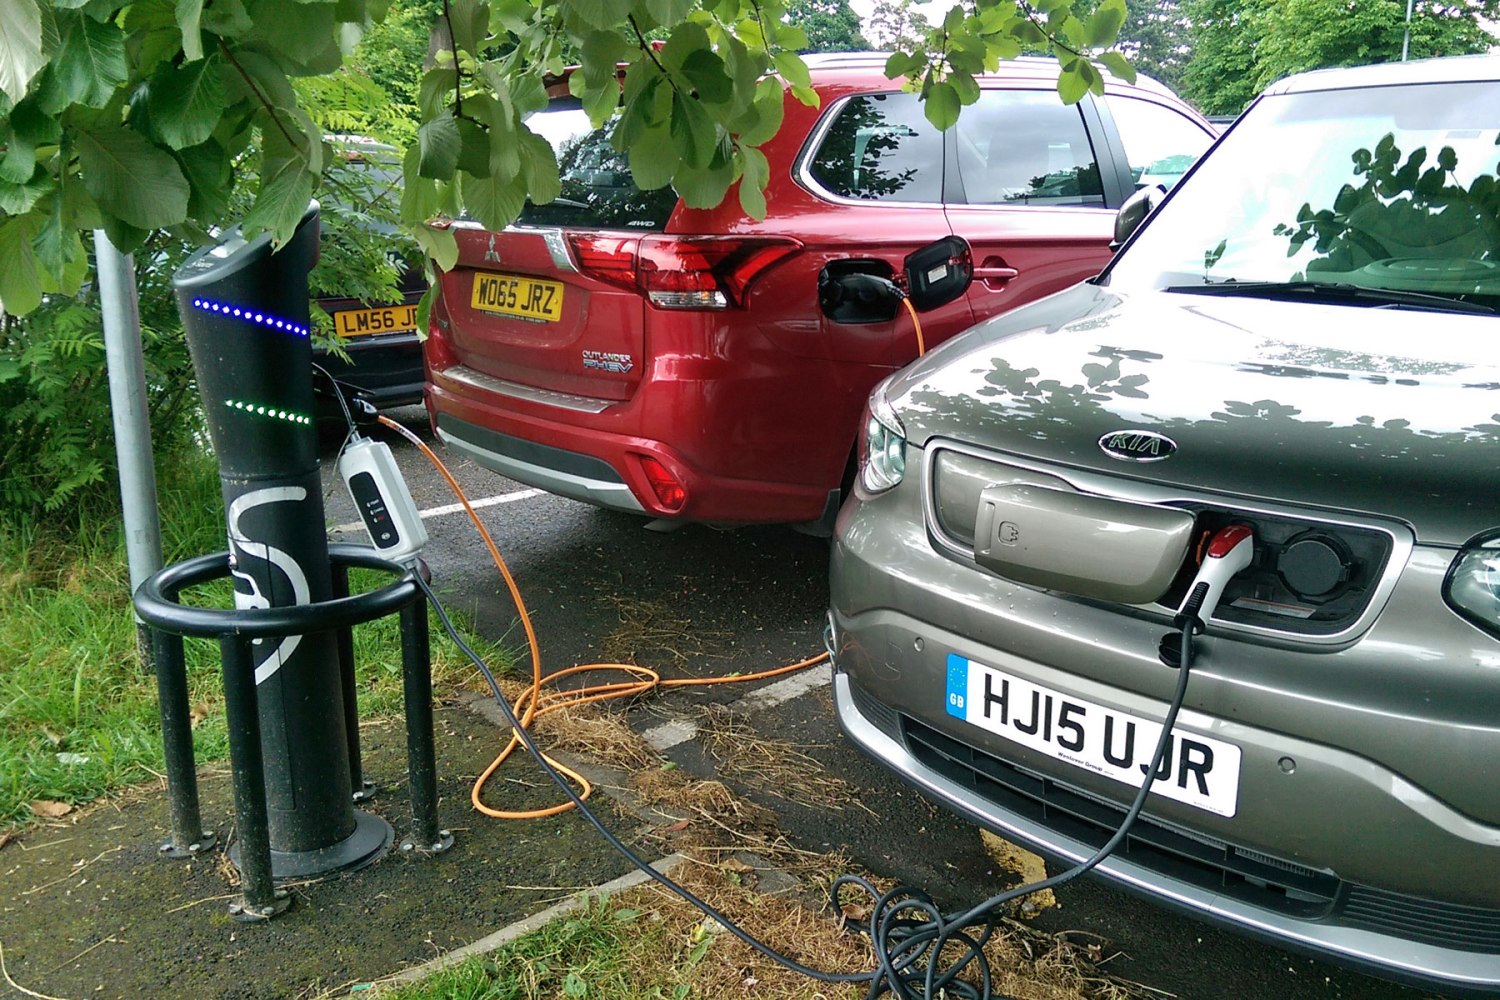 Month two: what's the etiquette around charging?